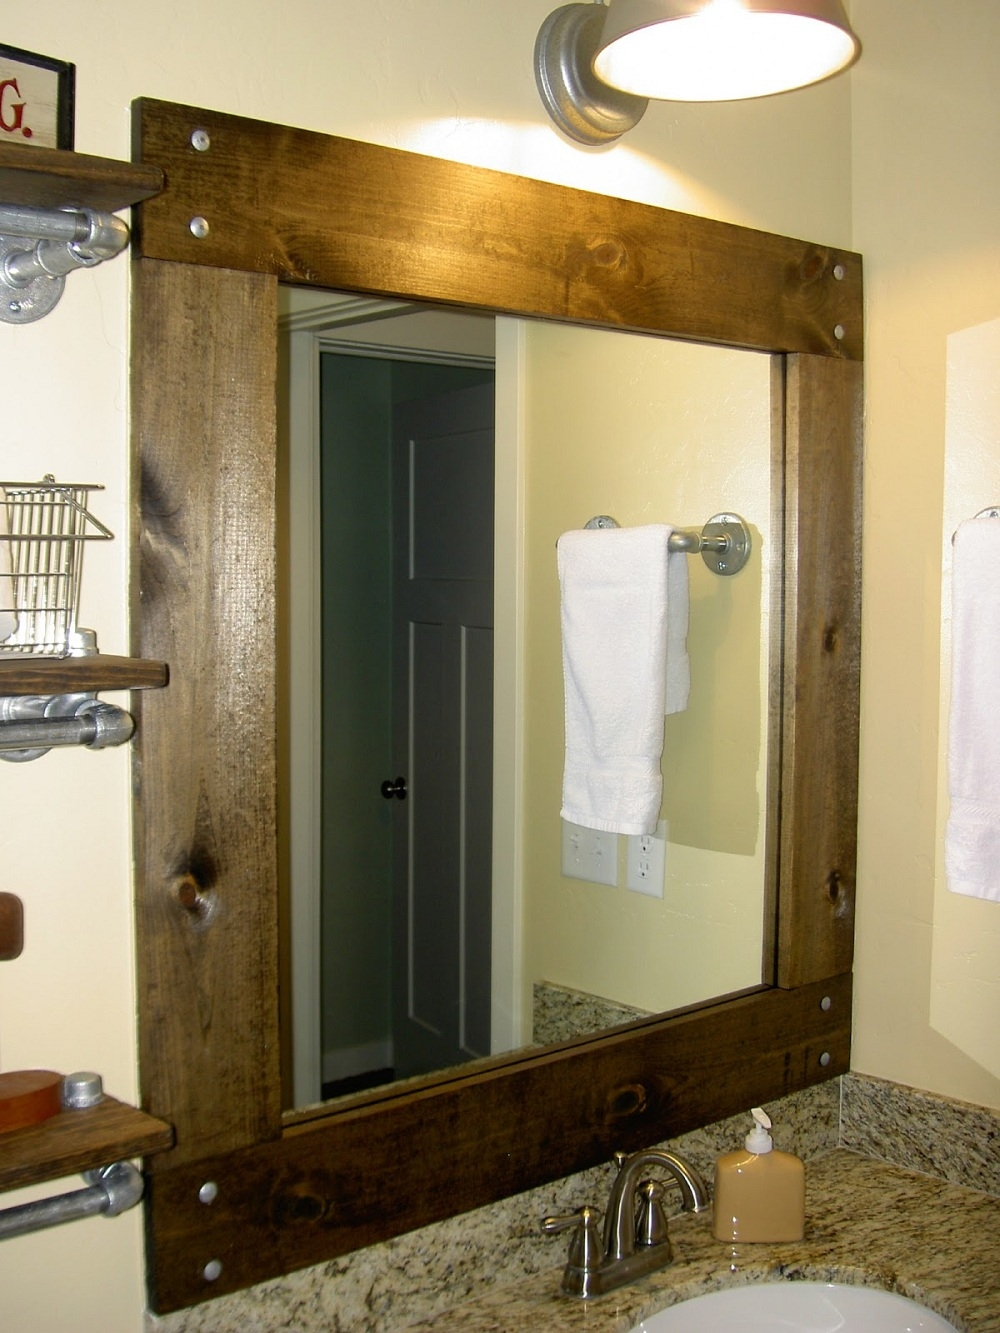 Bathroom Elegant Bathroom Decor With Large Framed Bathroom With Large Oak Framed Mirror (Image 2 of 15)